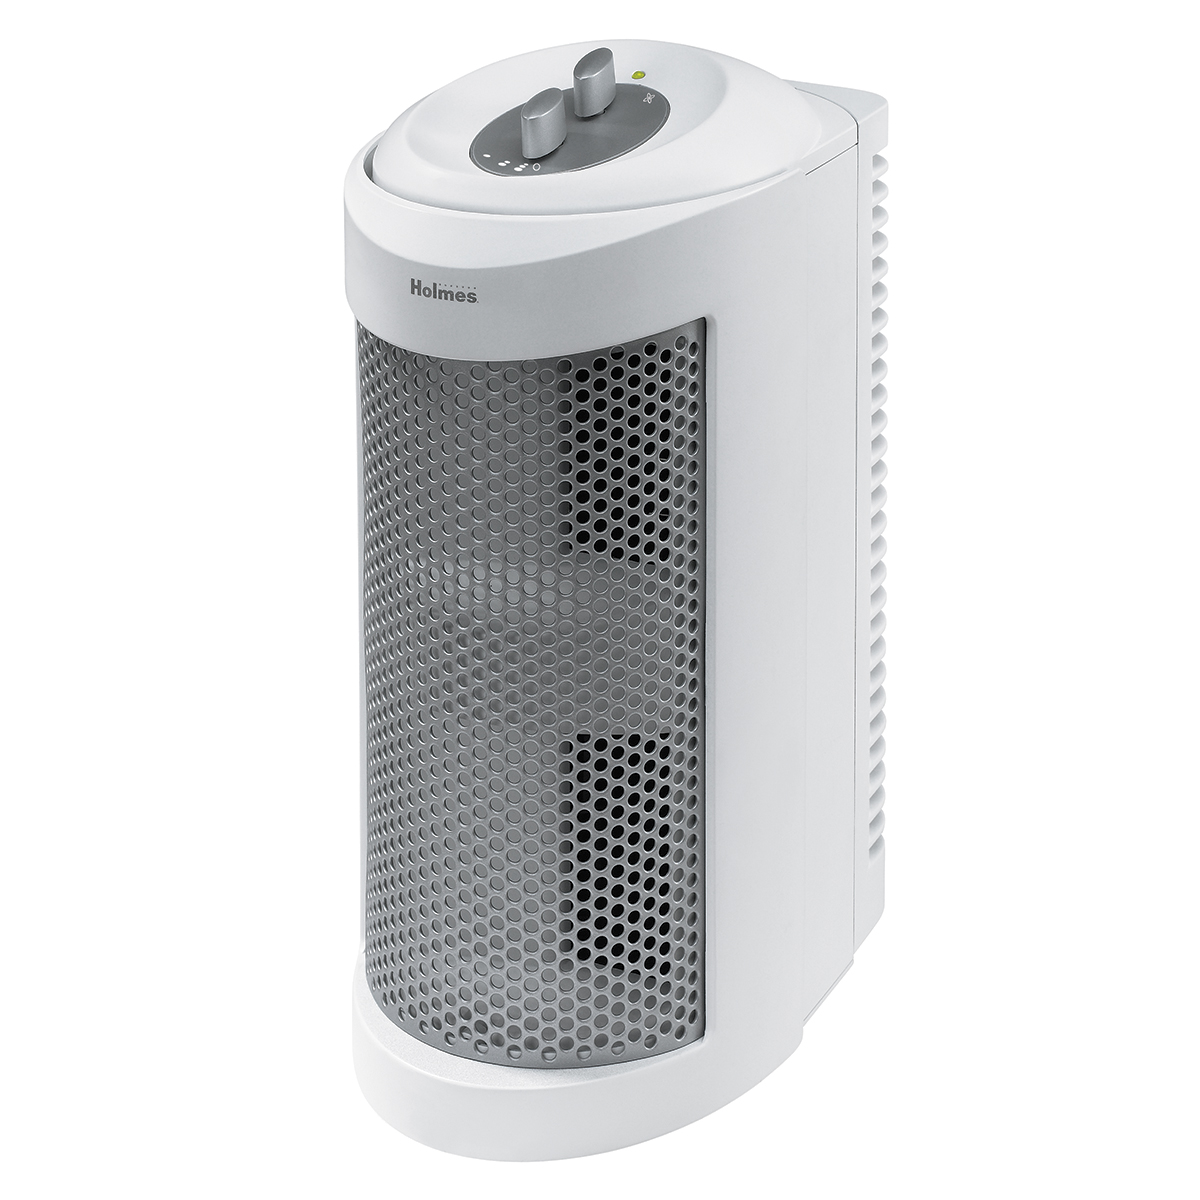 Holmes Allergen Remover Air Purifier Mini-Tower with True HEPA Filter, Three Speed (HAP706-NU)